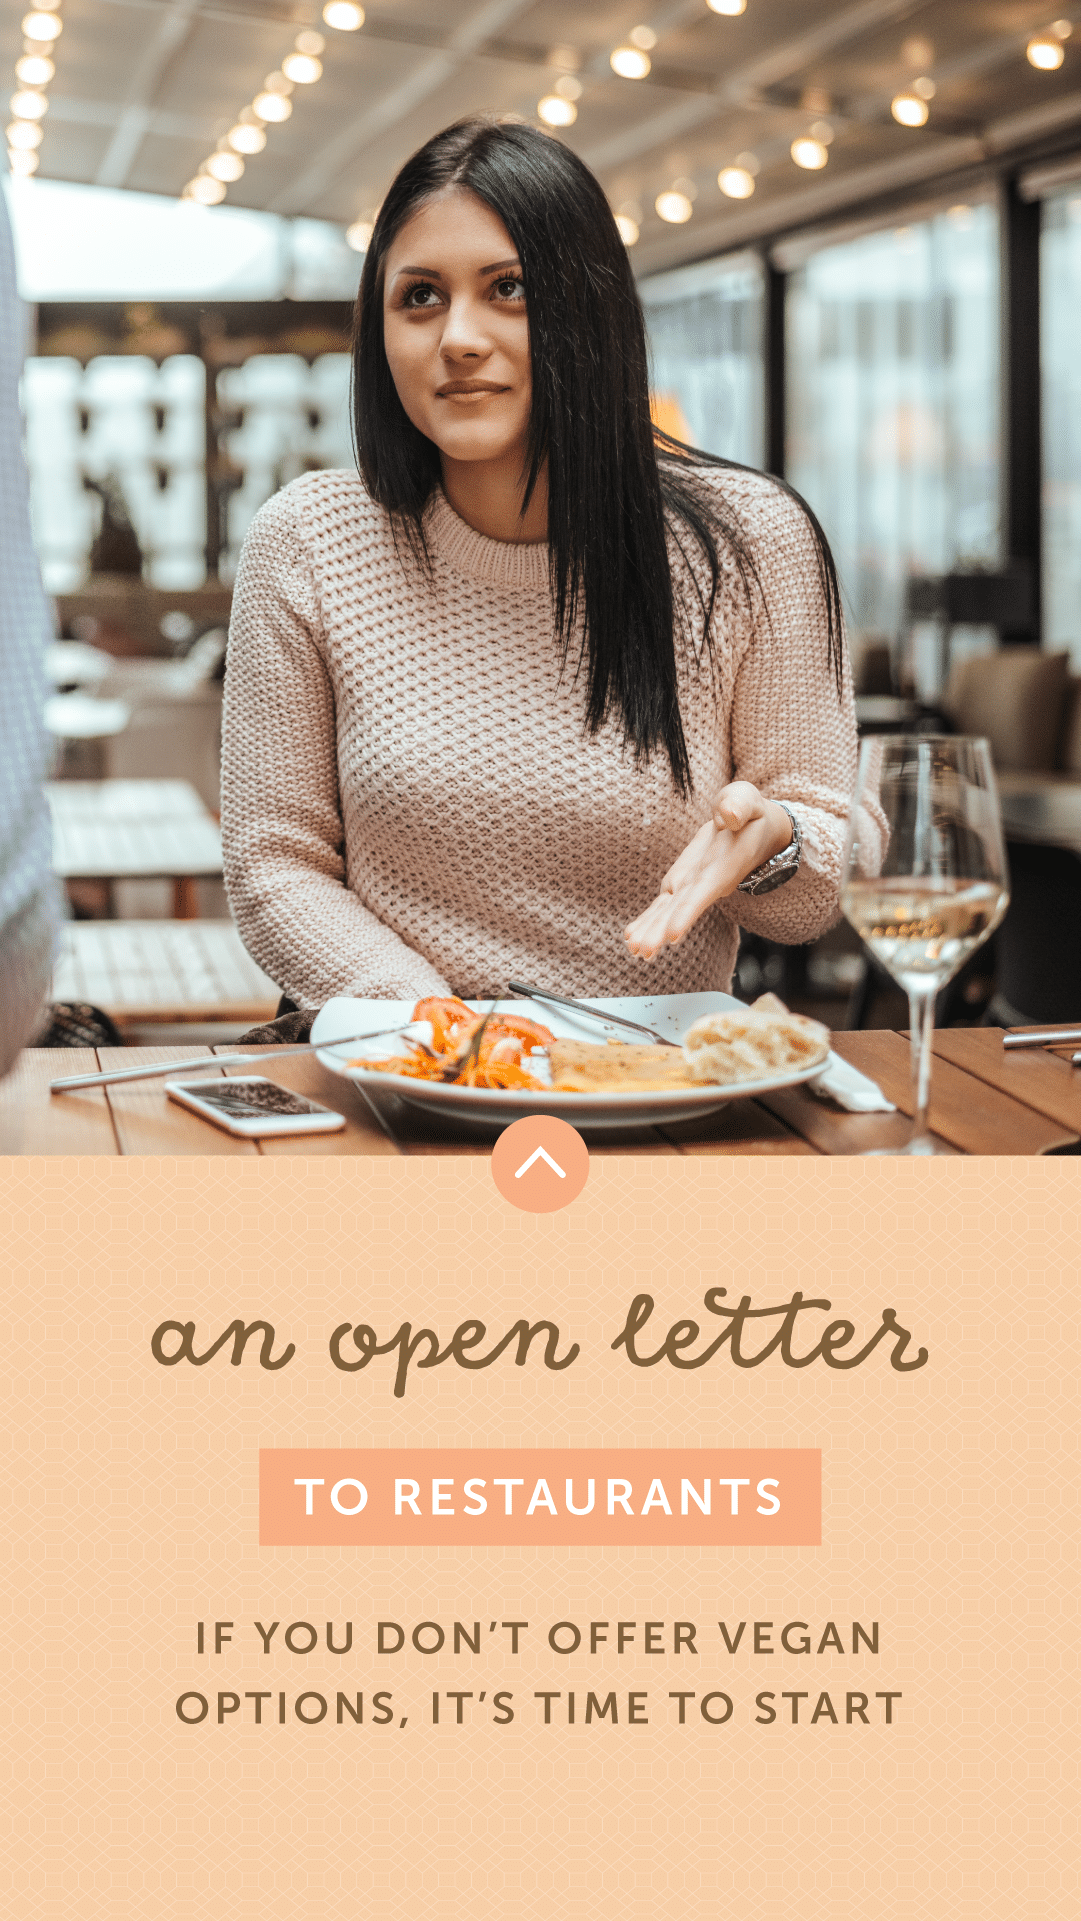 An Open Letter to Restaurants: If You Don't Offer Vegan Options, It's Time to Start